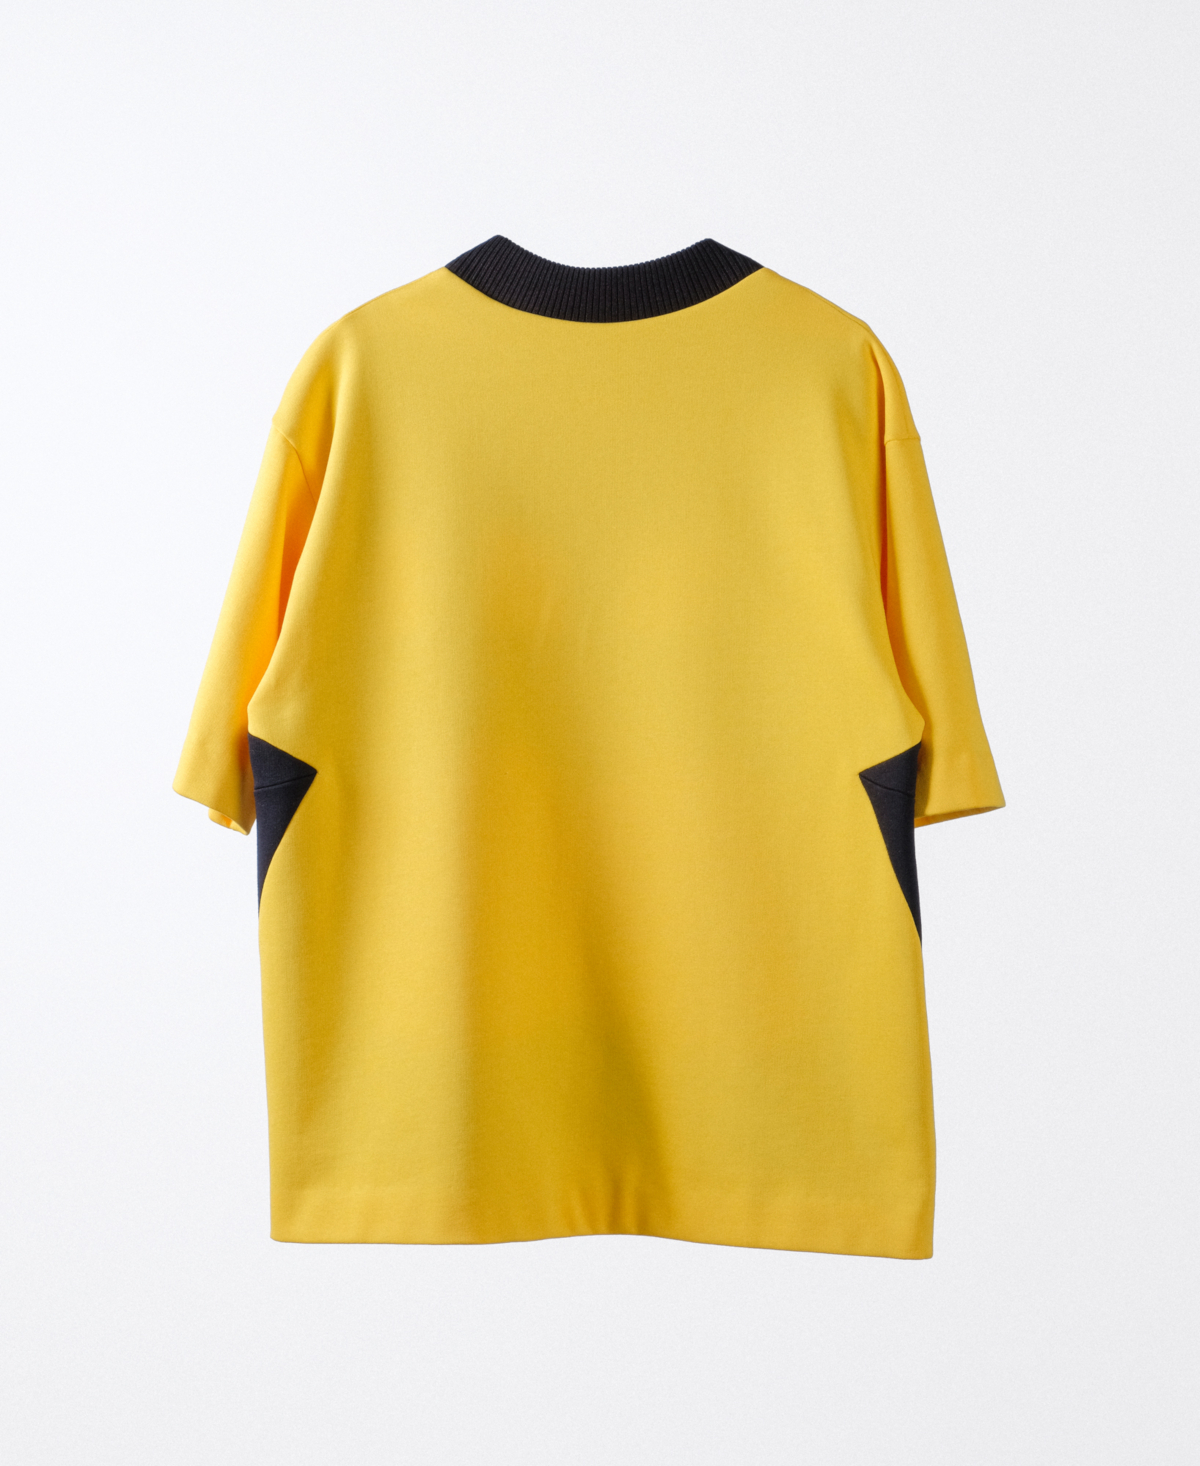 Screaming Yellow T-shirt